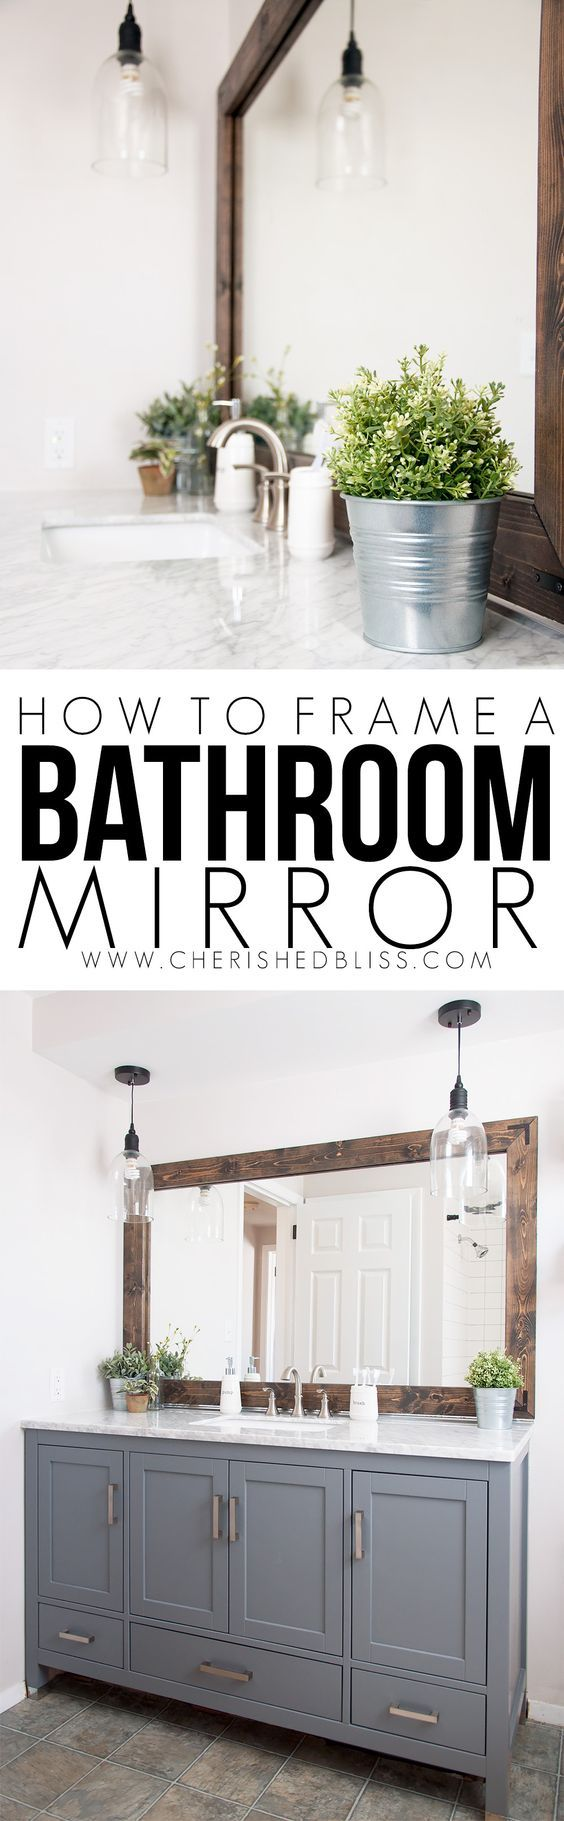 best 20 cheap mirrors ideas on pinterest horizontal mirrors how to frame a bathroom mirror